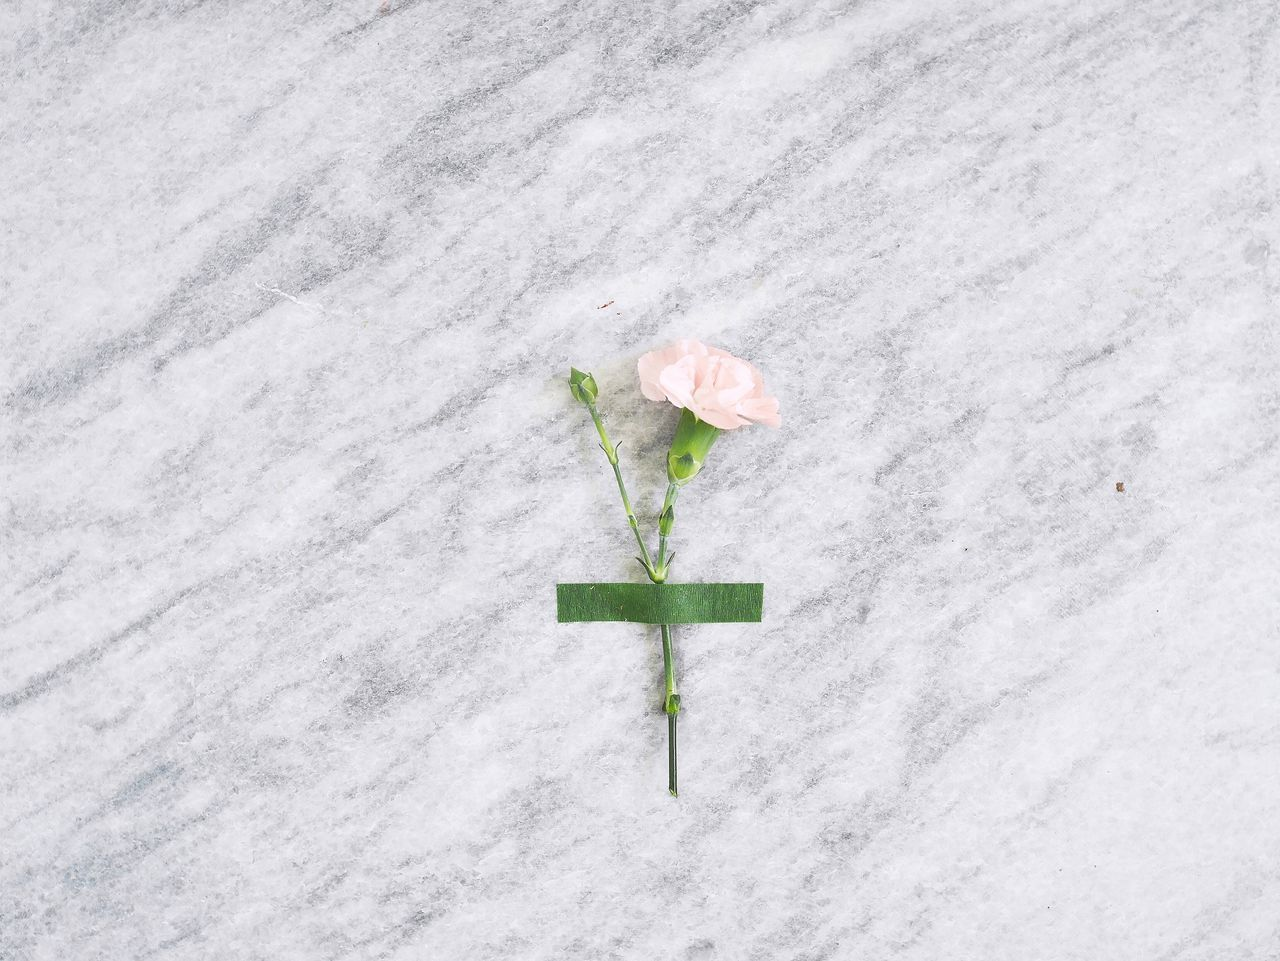 High angle view of flower on marble